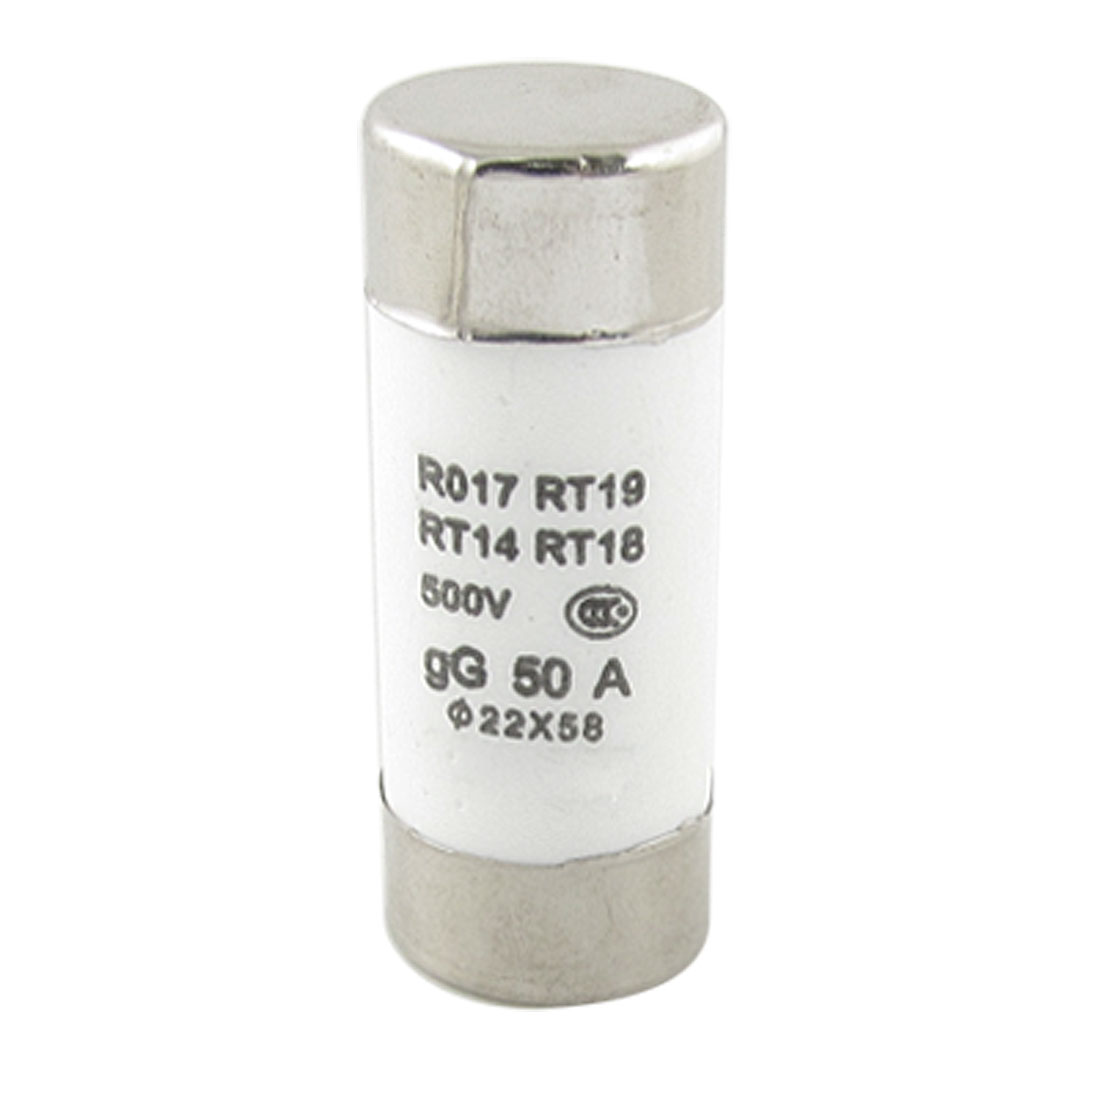 RO17 22 x 58mm 500V 50A Ceramic Tube Cylindrical Fuse Link